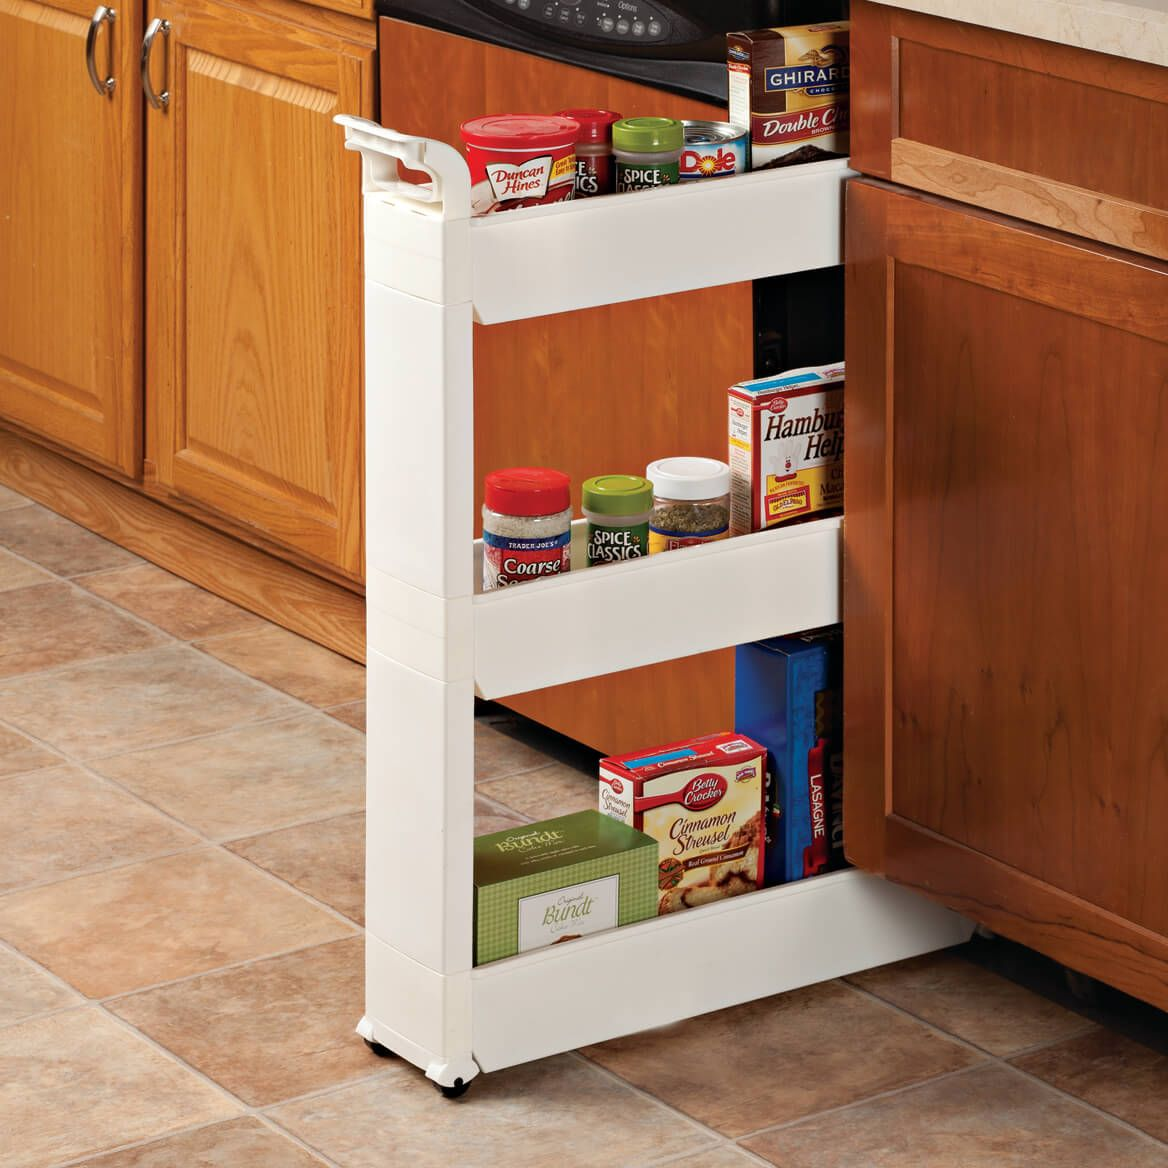 Miles Kimball Slim Storage Cart Turns Tight Spots Into Generous Storage Space A Prime Addition For Kitchens Bathroo Storage Cart Kitchen Storage Tiny Kitchen